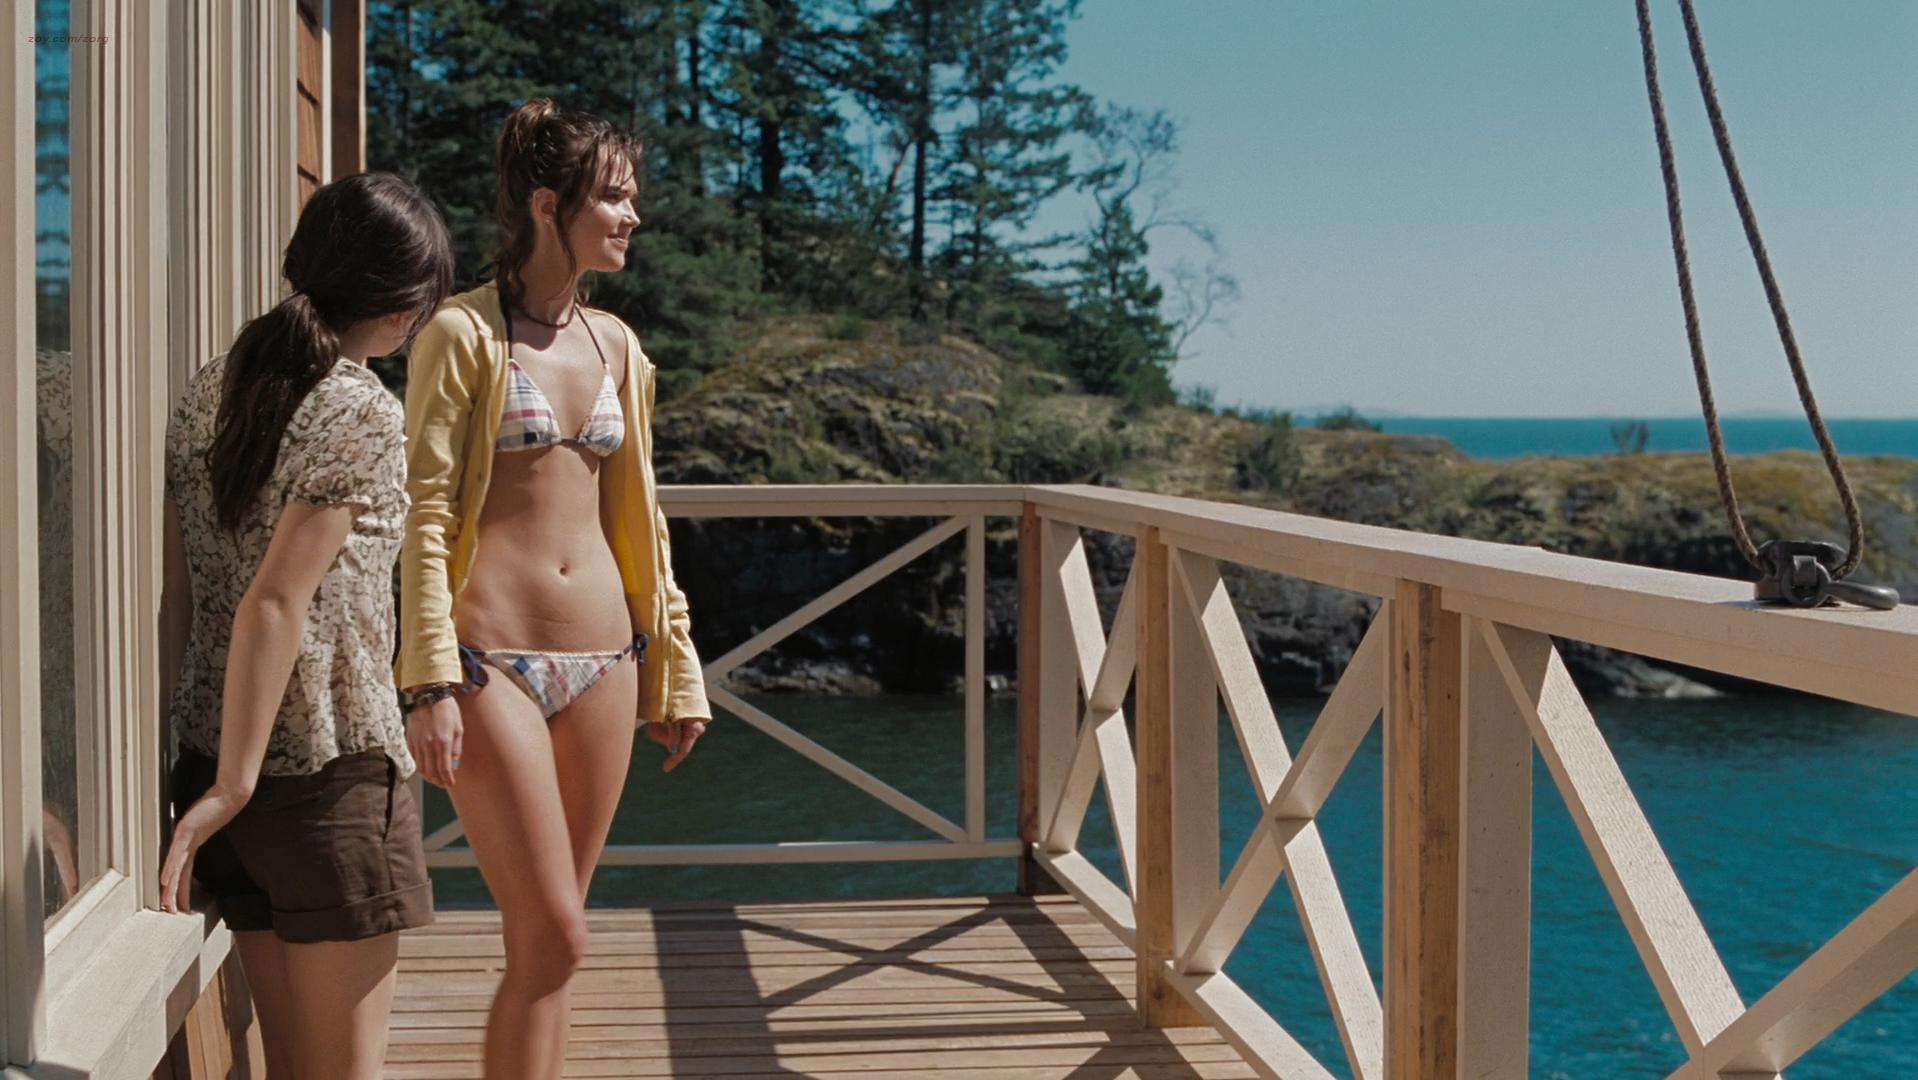 Arielle Kebbel sexy, Emily Browning sexy, Elizabeth Banks sexy - The Uninvited (2009)